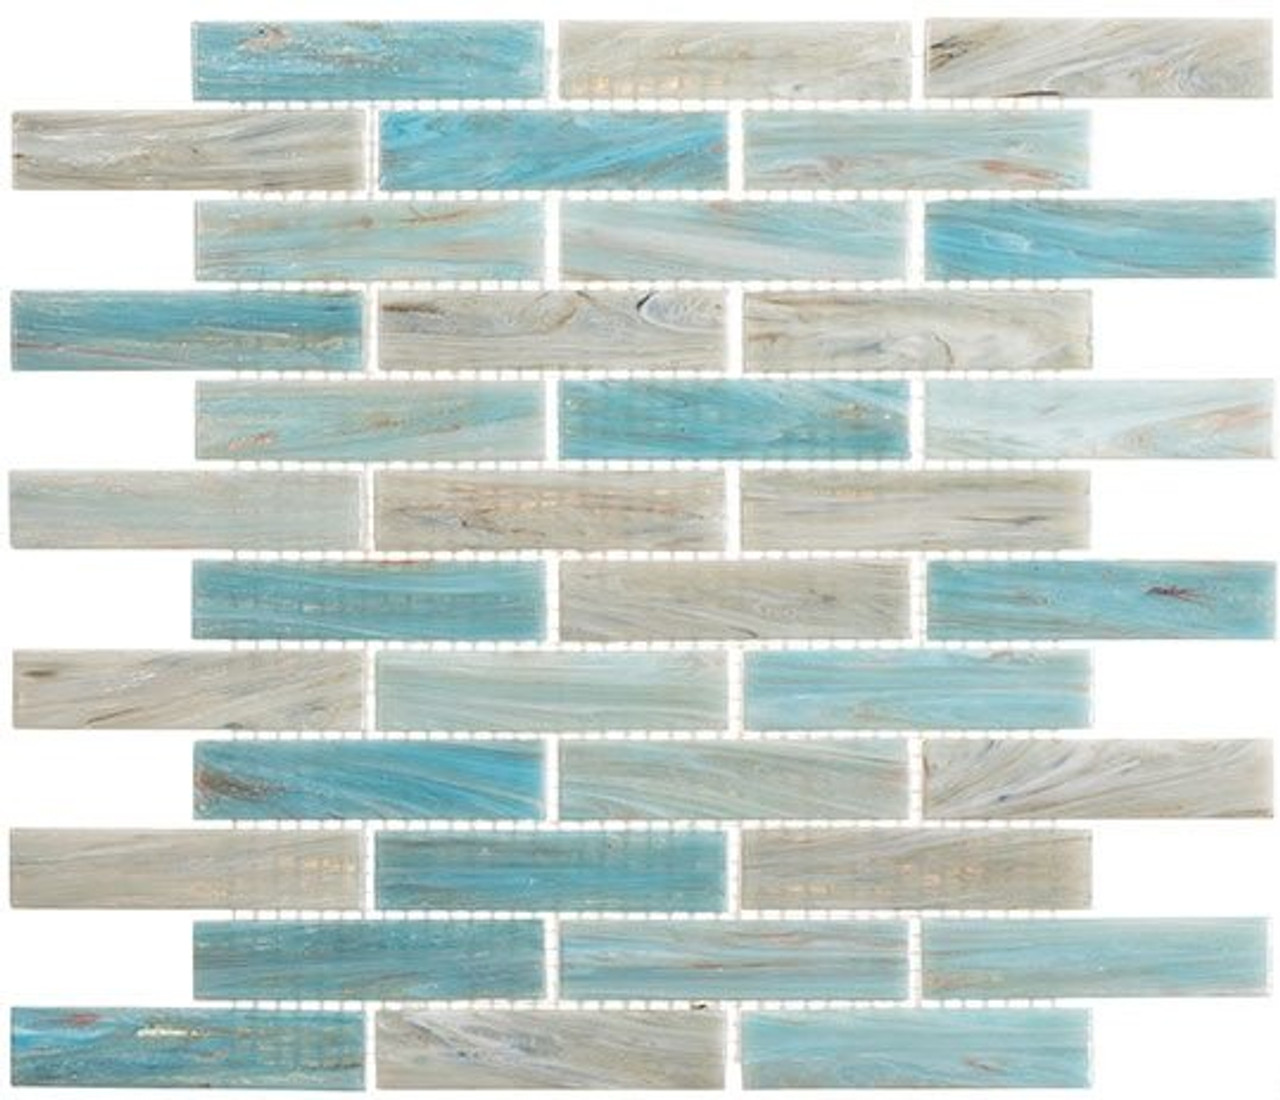 Bella Glass Tiles Oyster Cove Series Mellow Waters OTC1203